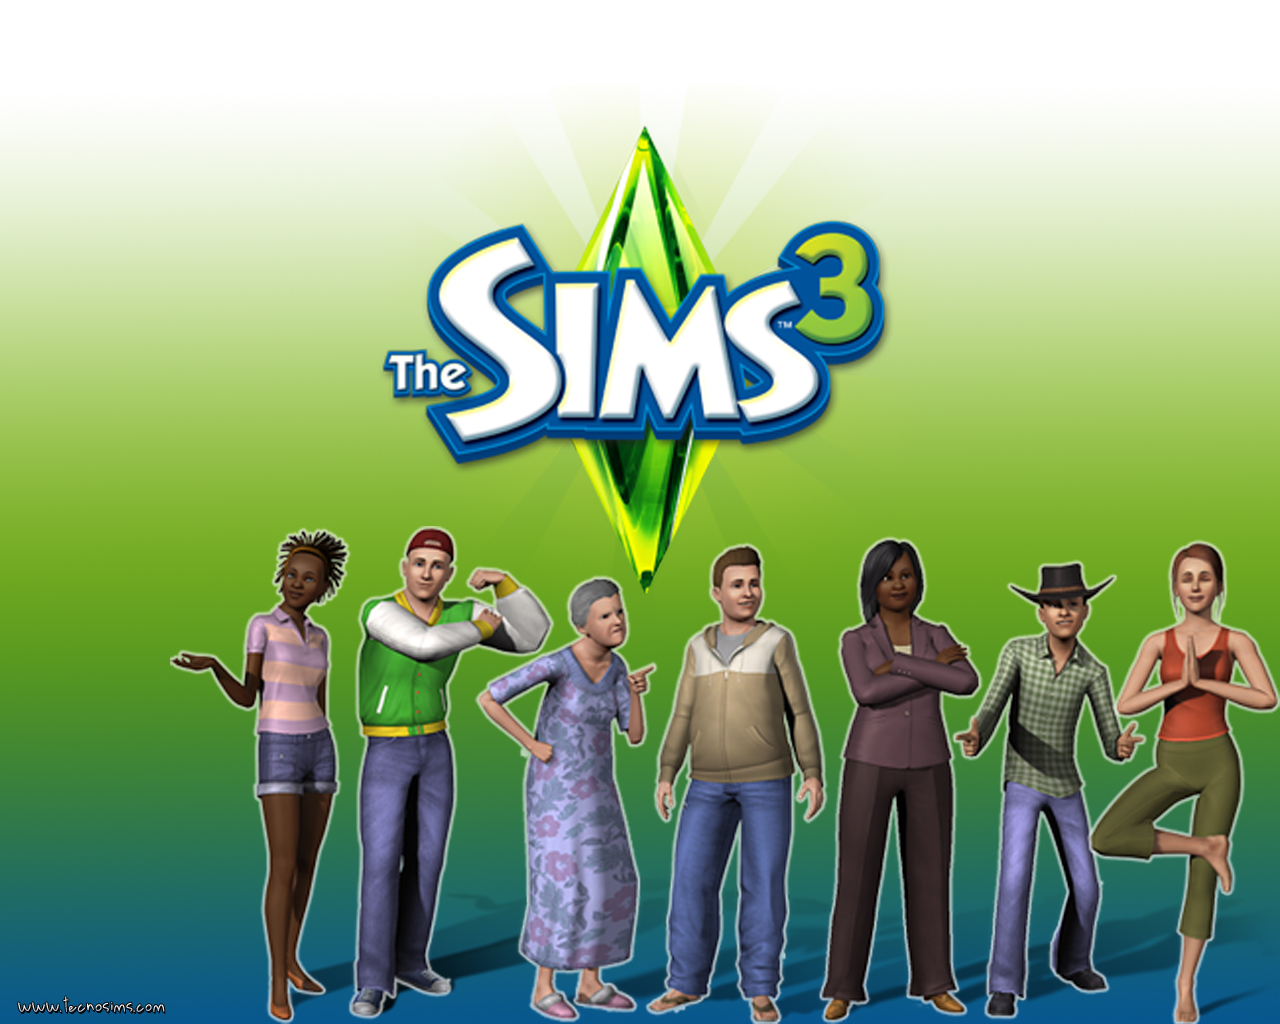 the sims 3 wallpaper 14 Top windows 7 themes 1280x1024